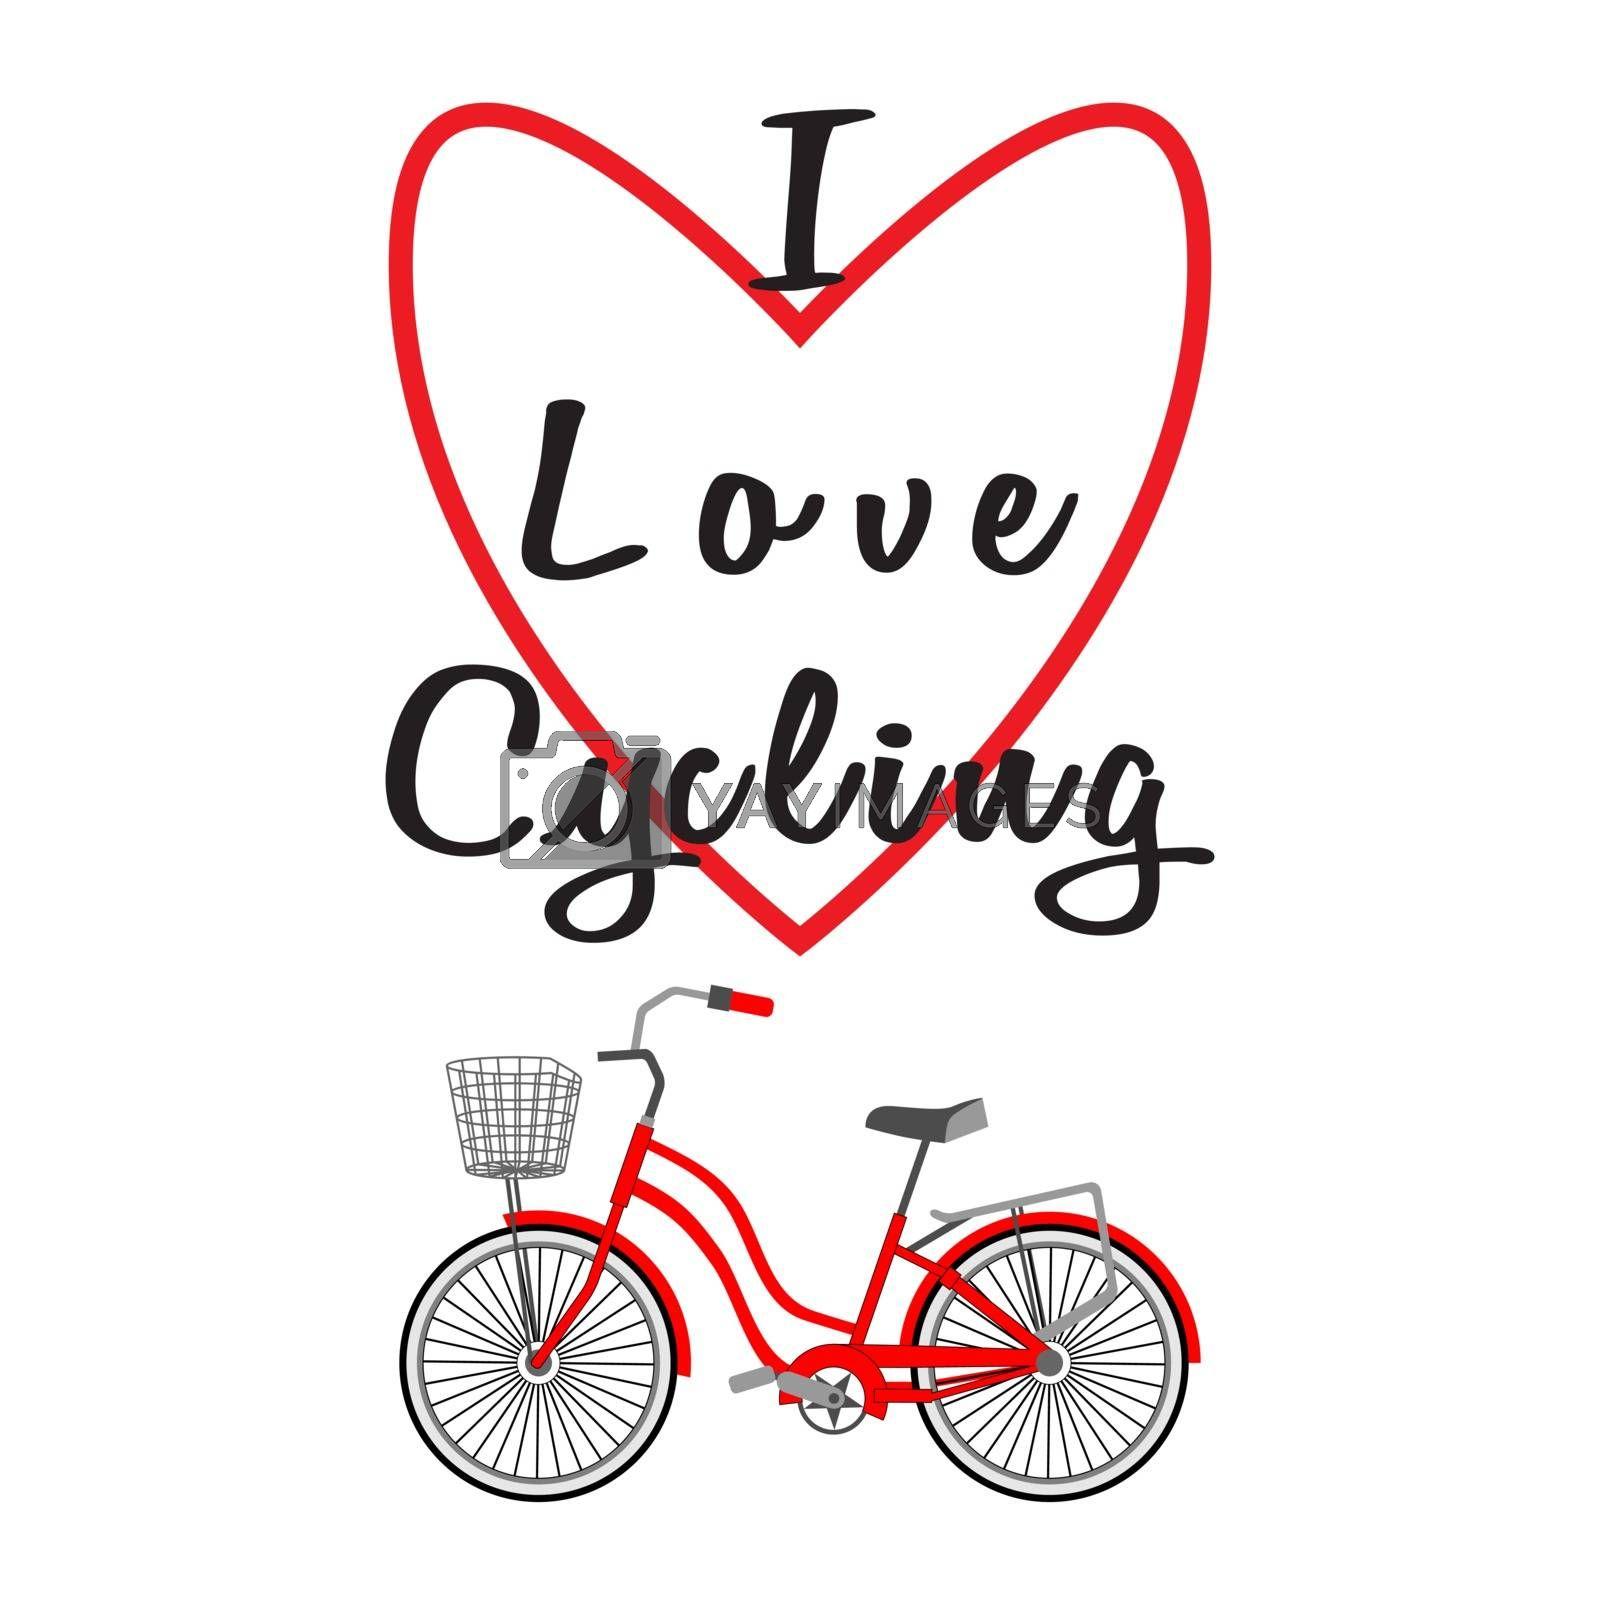 Bicycle with a basket. Lettering - I Love Cycling. Heart contour. Vector illustration on a white background. Modern flat style. Design for advertising, travel, bike shops, sport, outdoor activities.